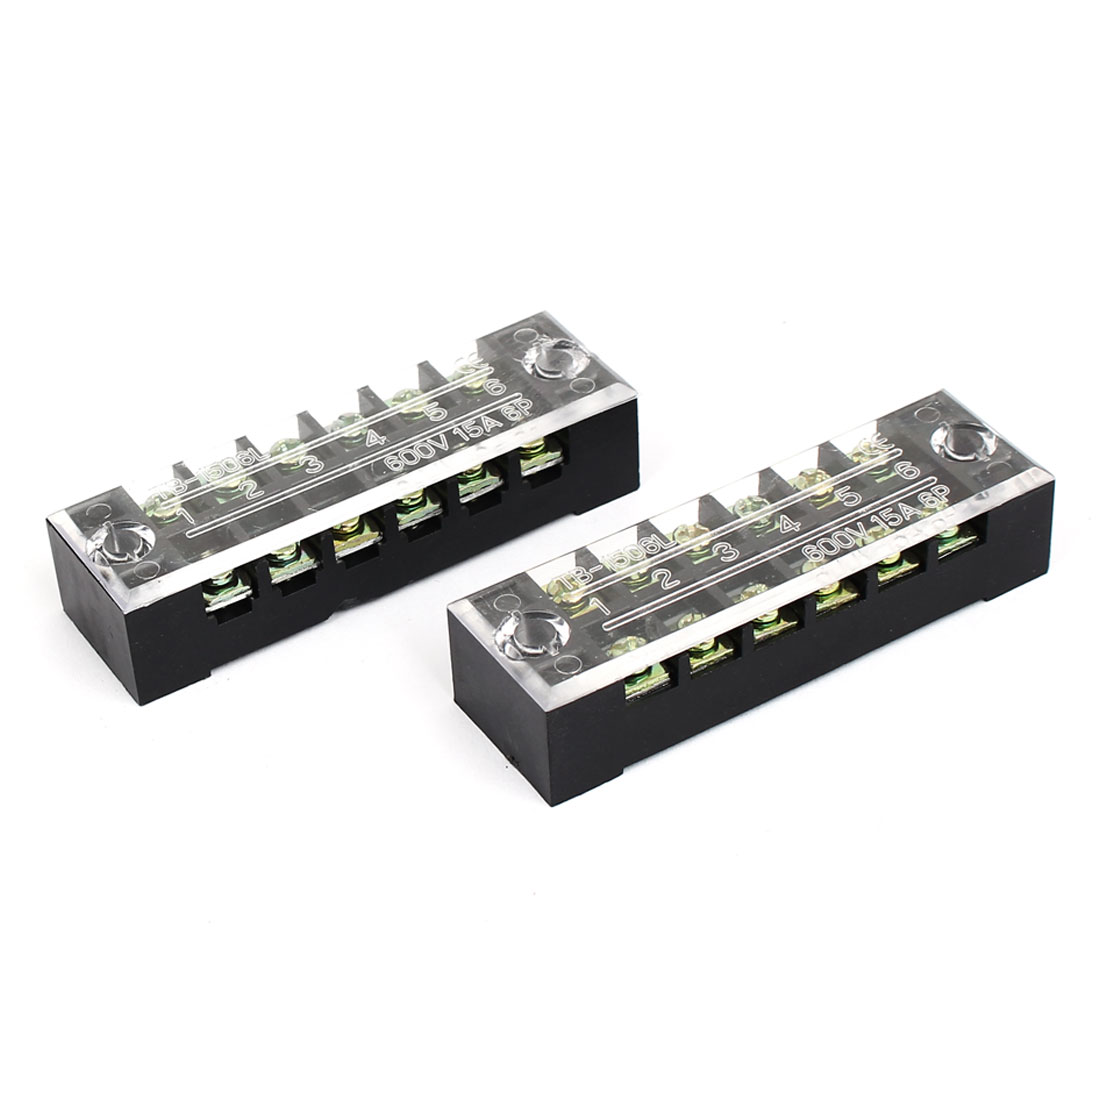 2 Pcs TB-1506L Dual Rows 6 Positions 6P Terminal Blocks Barrier 600V 15A